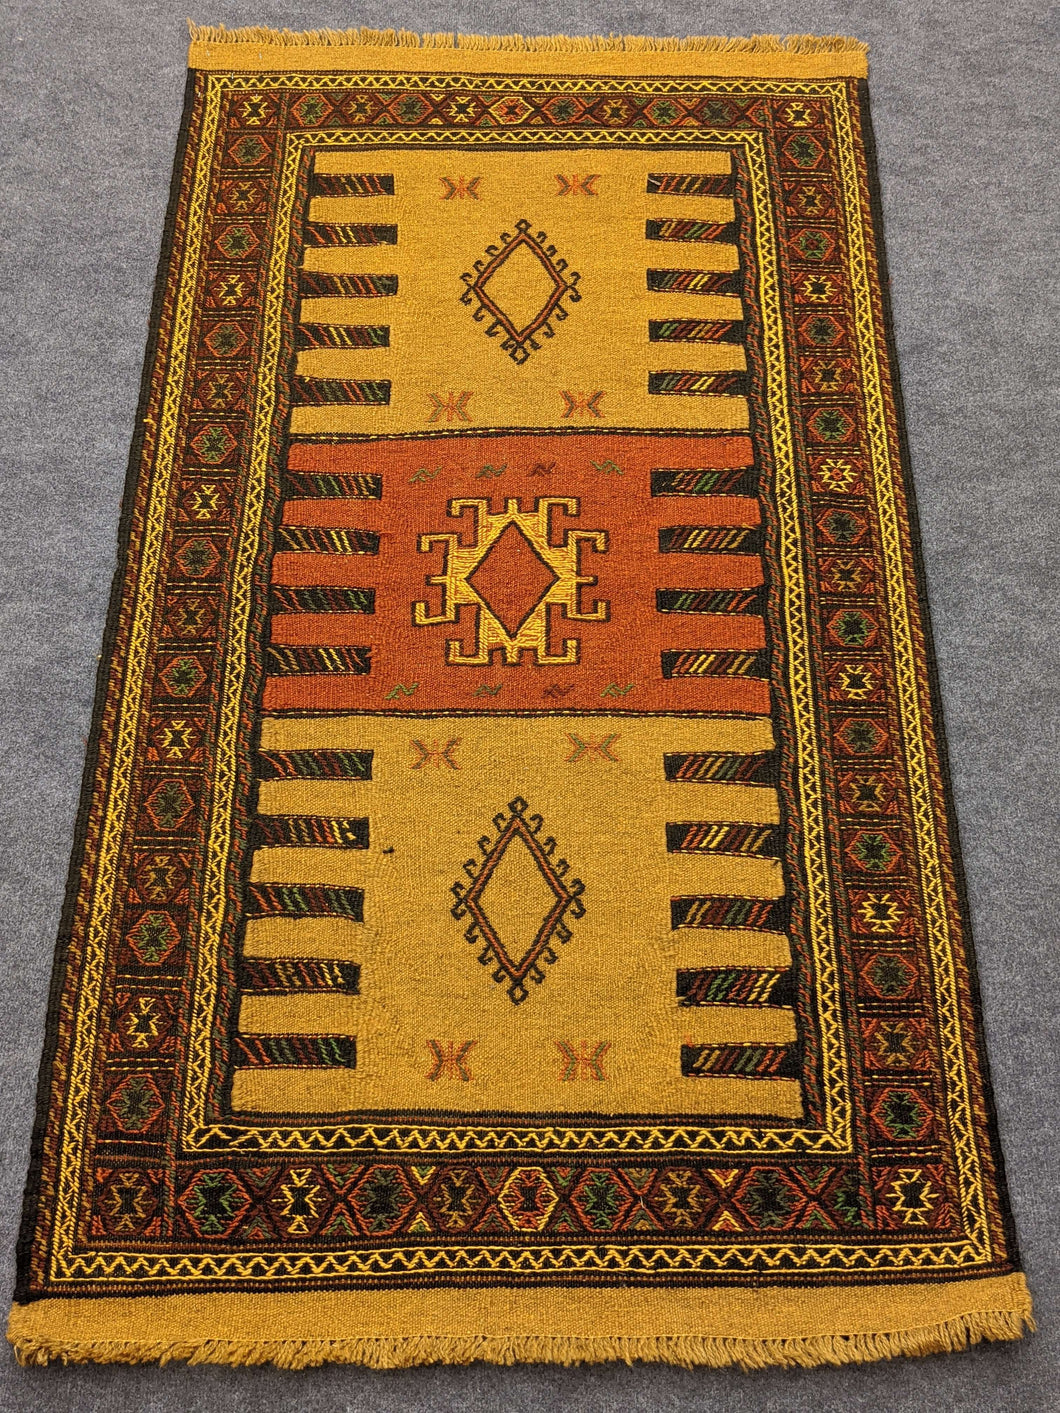 Ancient Geometric Hittite Design Rug with Leather - Hittite Home